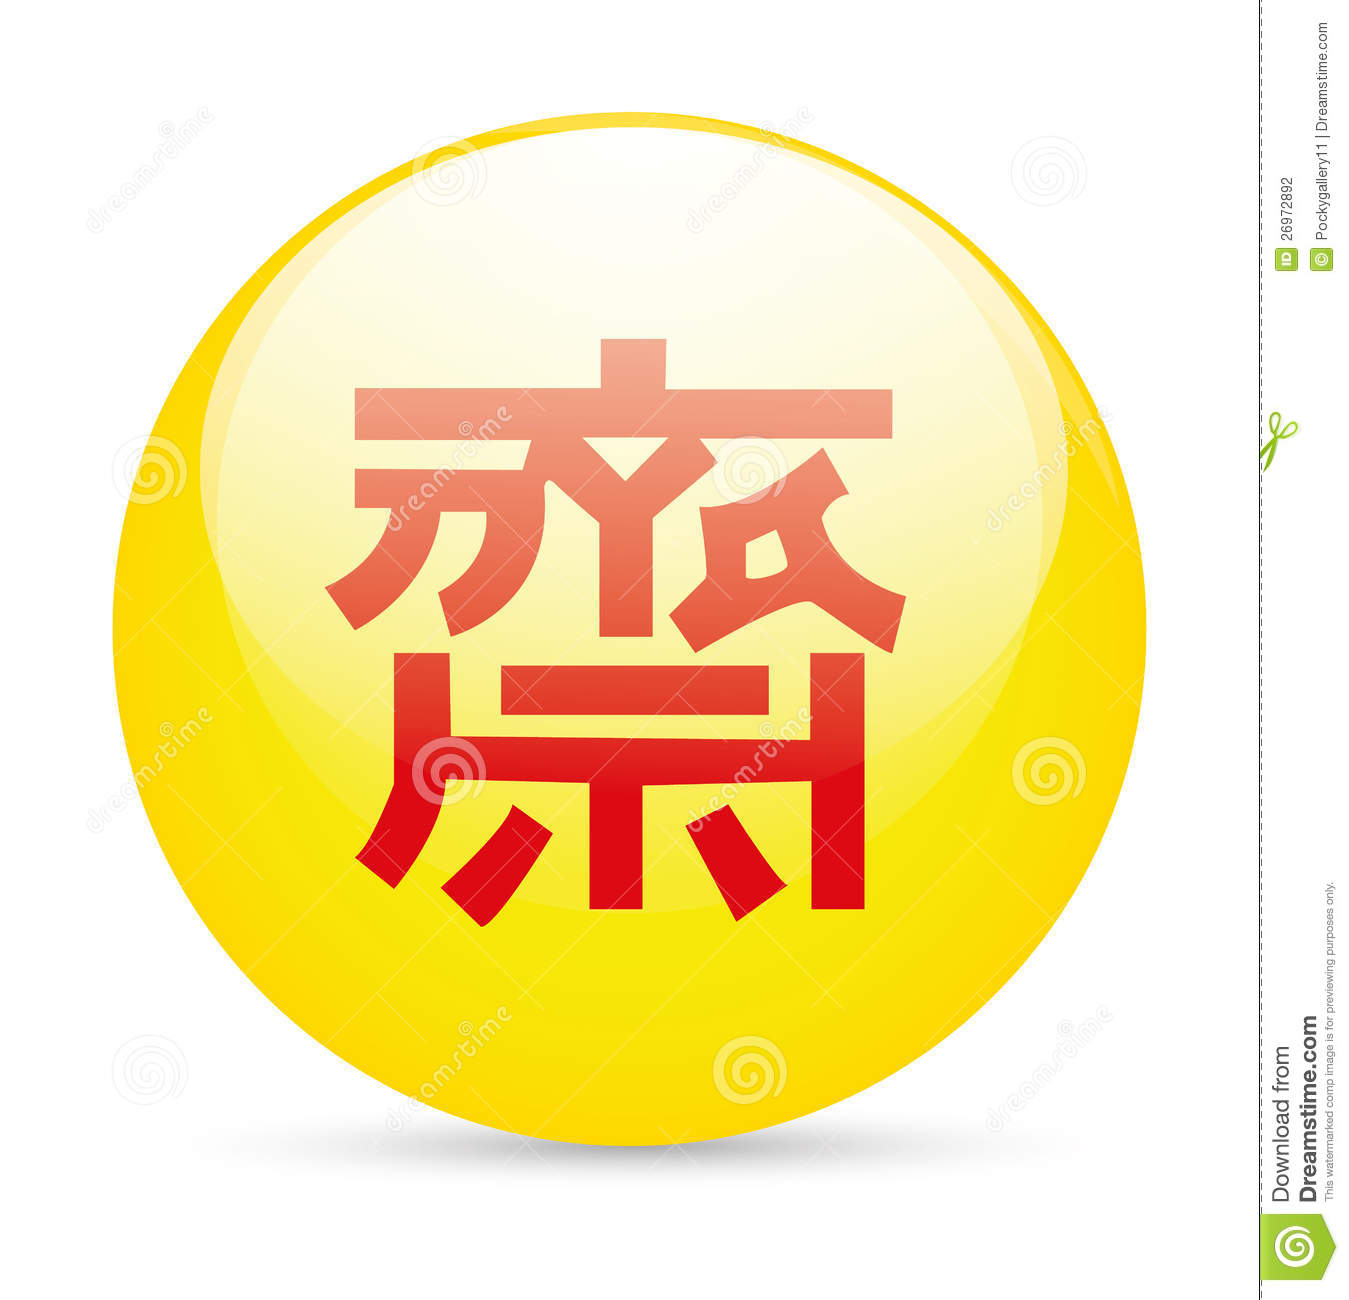 Chinese symbol for food gallery symbol and sign ideas chinese symbol food image collections symbol and sign ideas chinese vegetarian food festival logo button stock buycottarizona